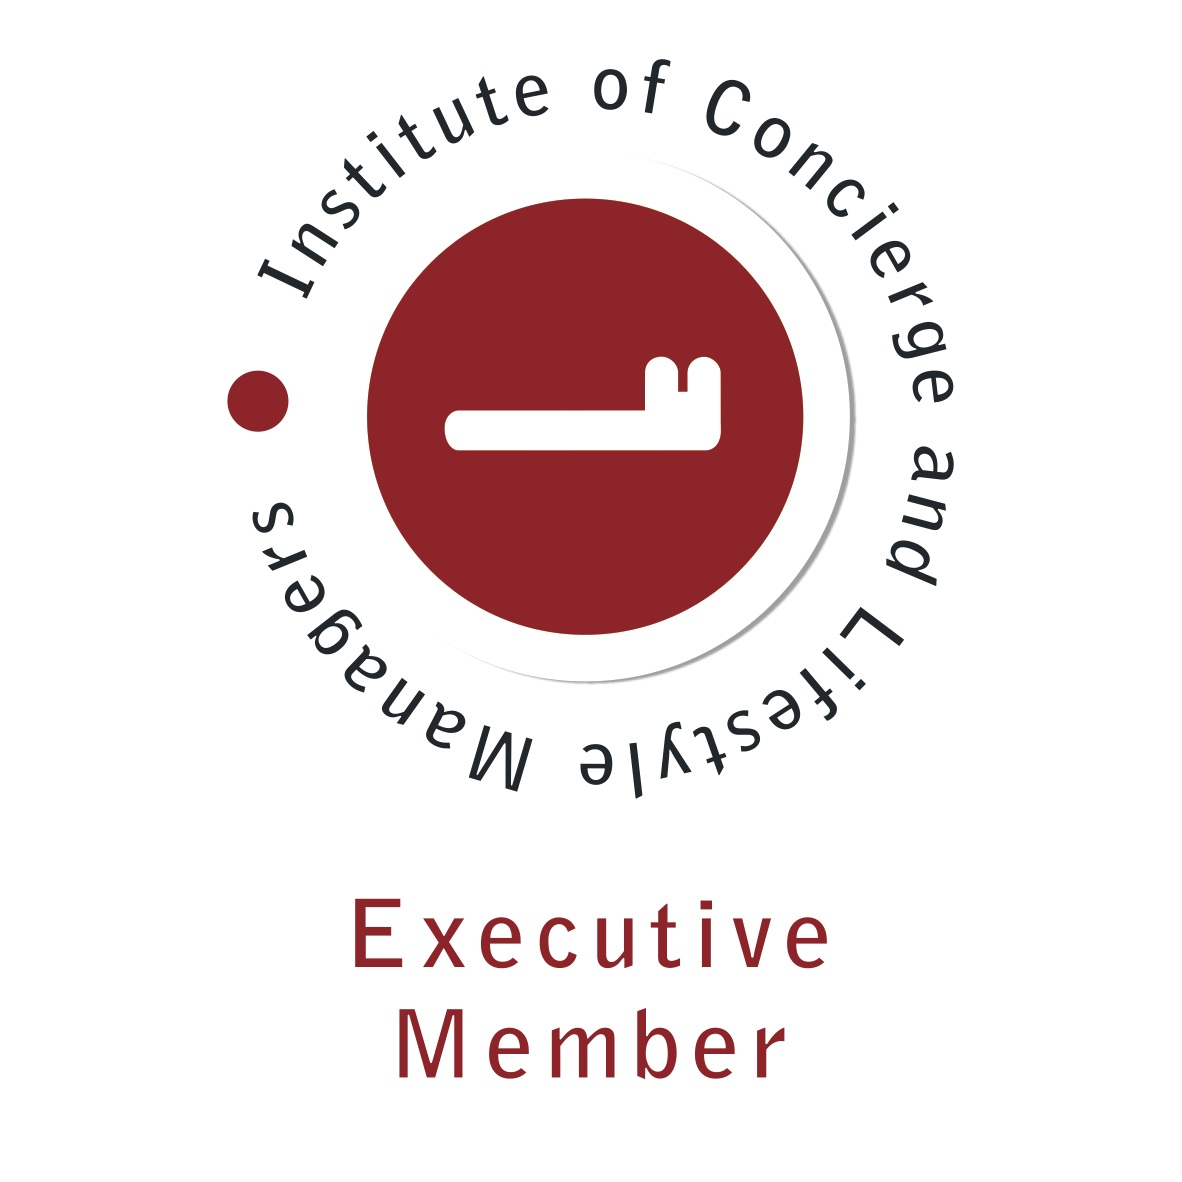 Executive Member Institute of Concierge And Lifestyle Managers (iCALM)